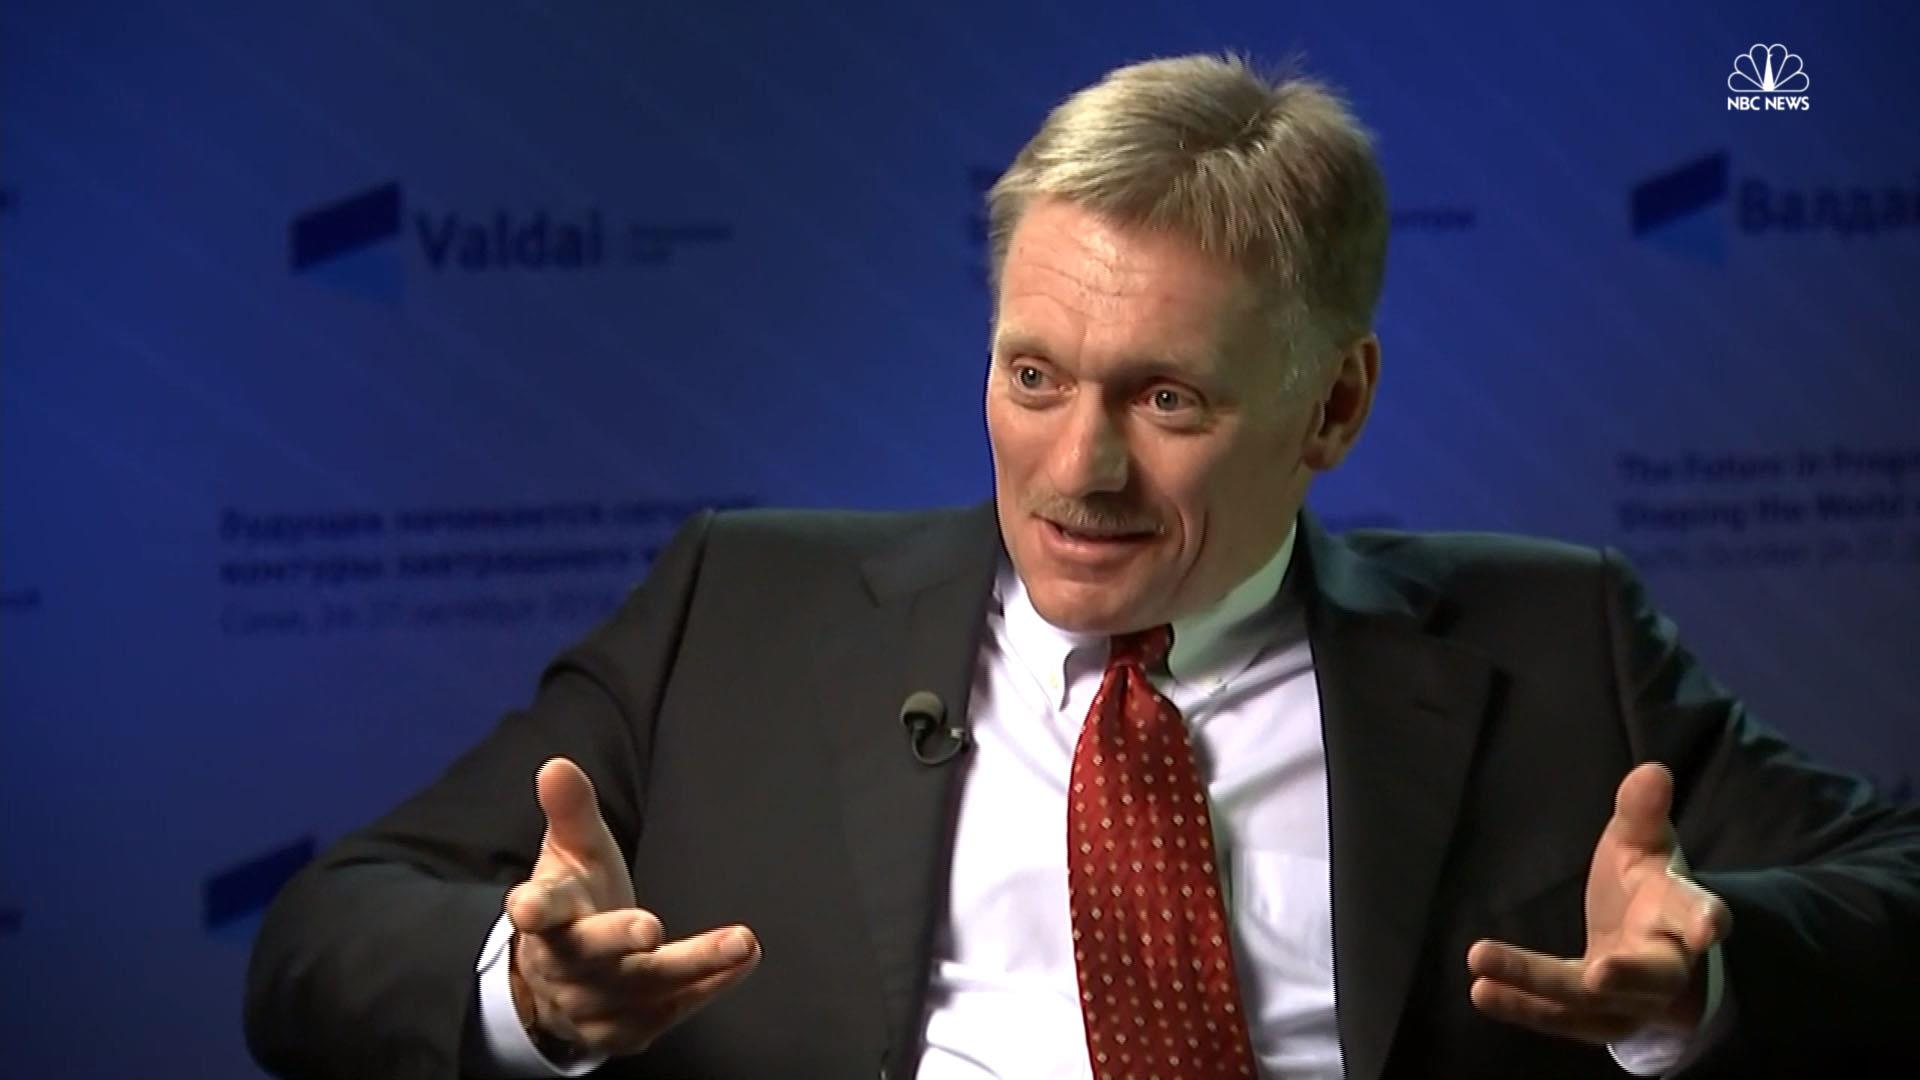 In Full: NBC News Exclusive Interview with Putin's Spokesman